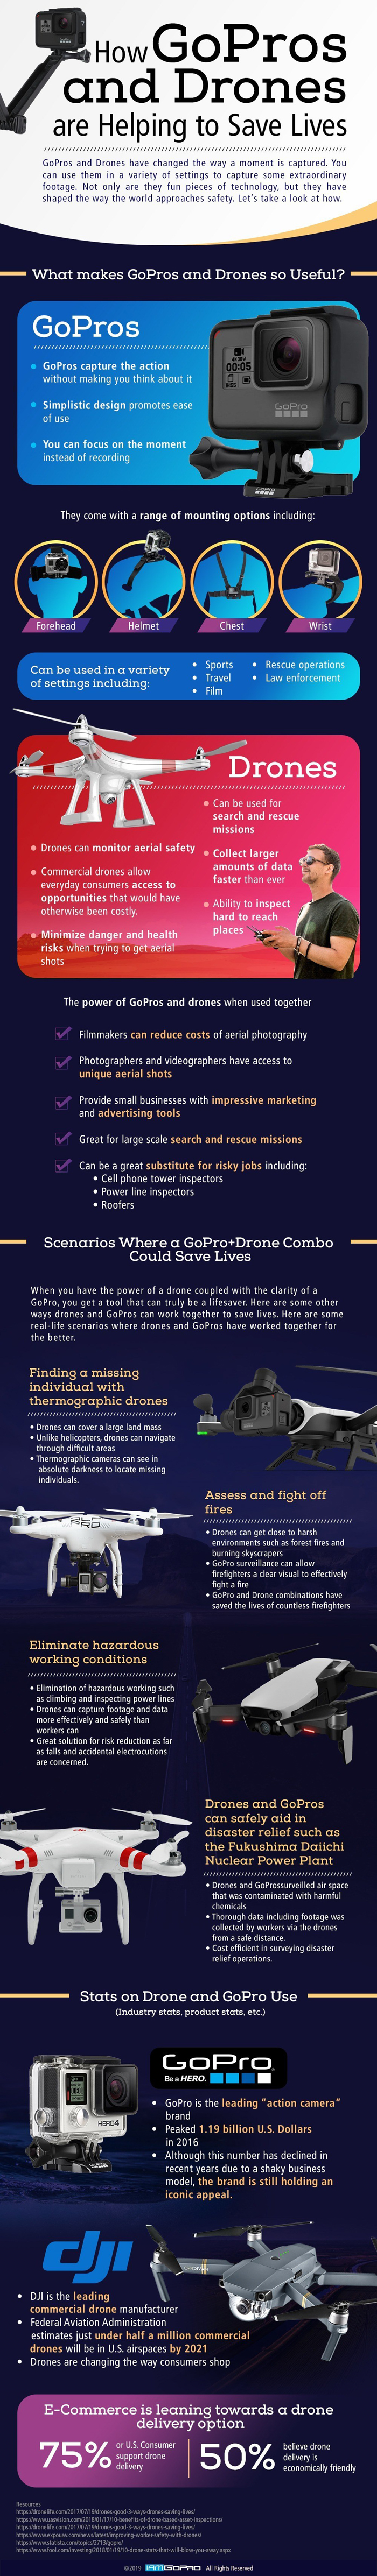 How GoPros and Drones are Helping to Save Lives